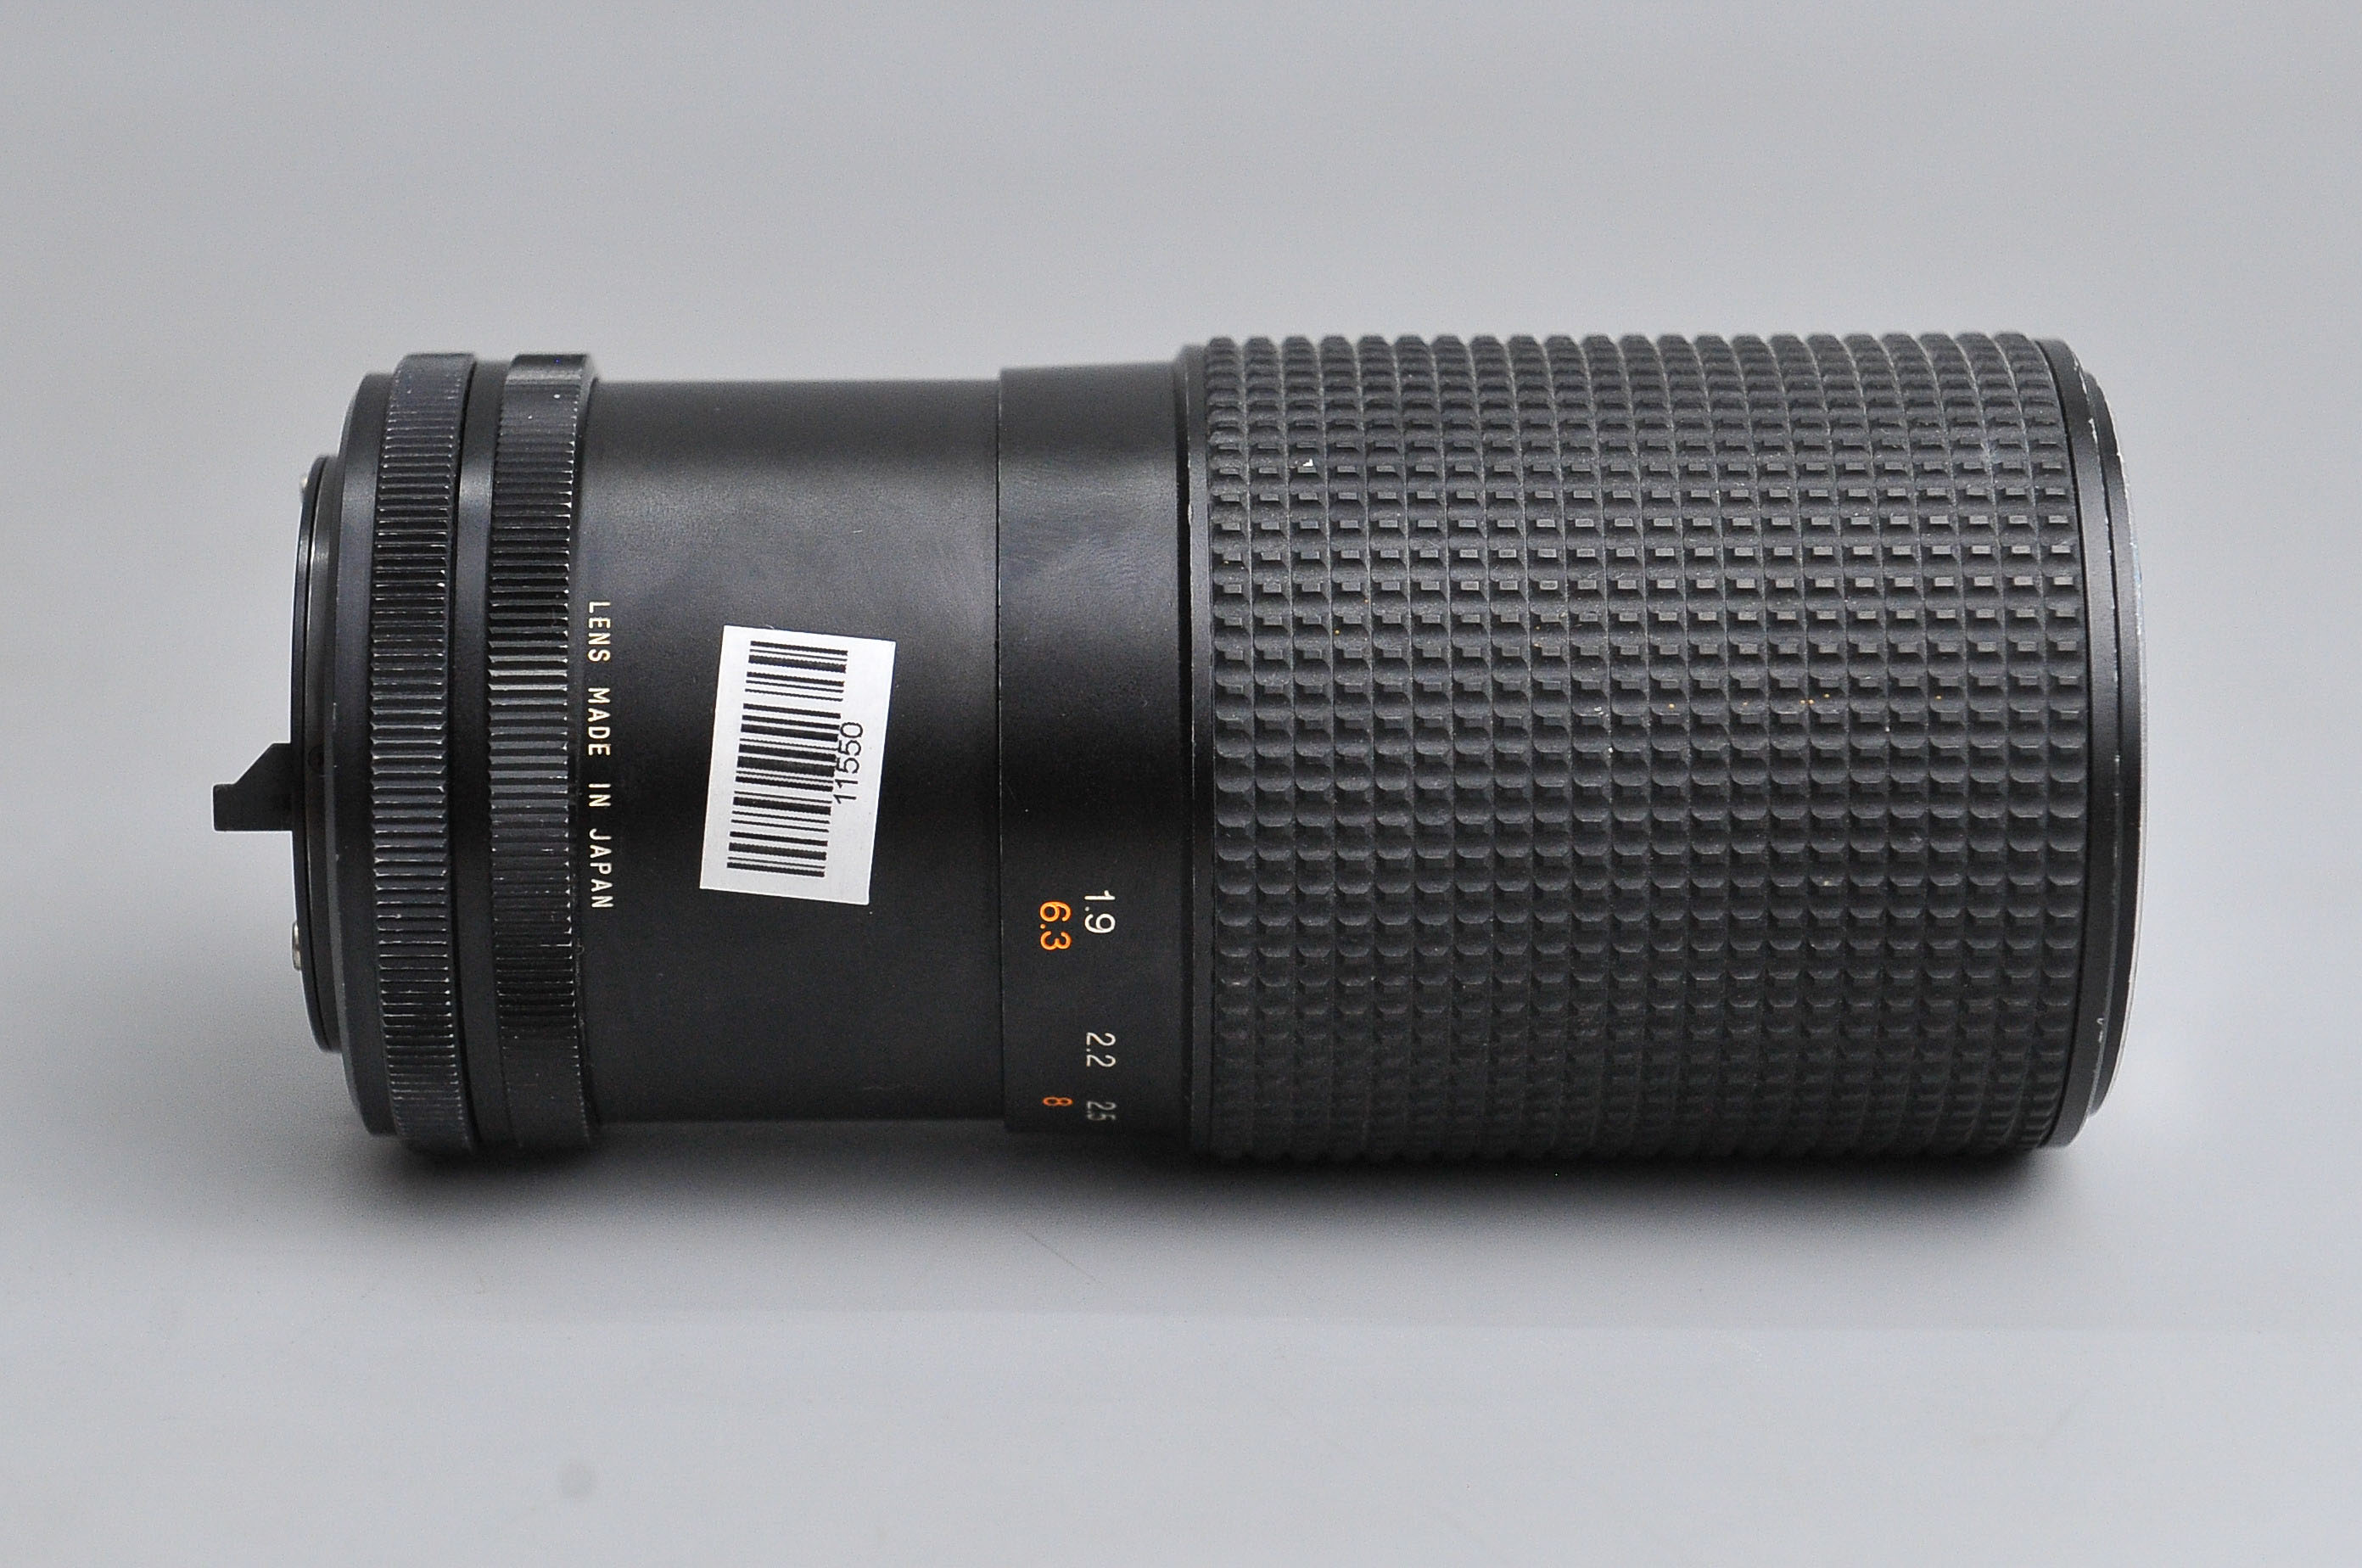 sears-80-200mm-f4-0-mf-canon-fd-80-200-4-0-99-11550-ttt